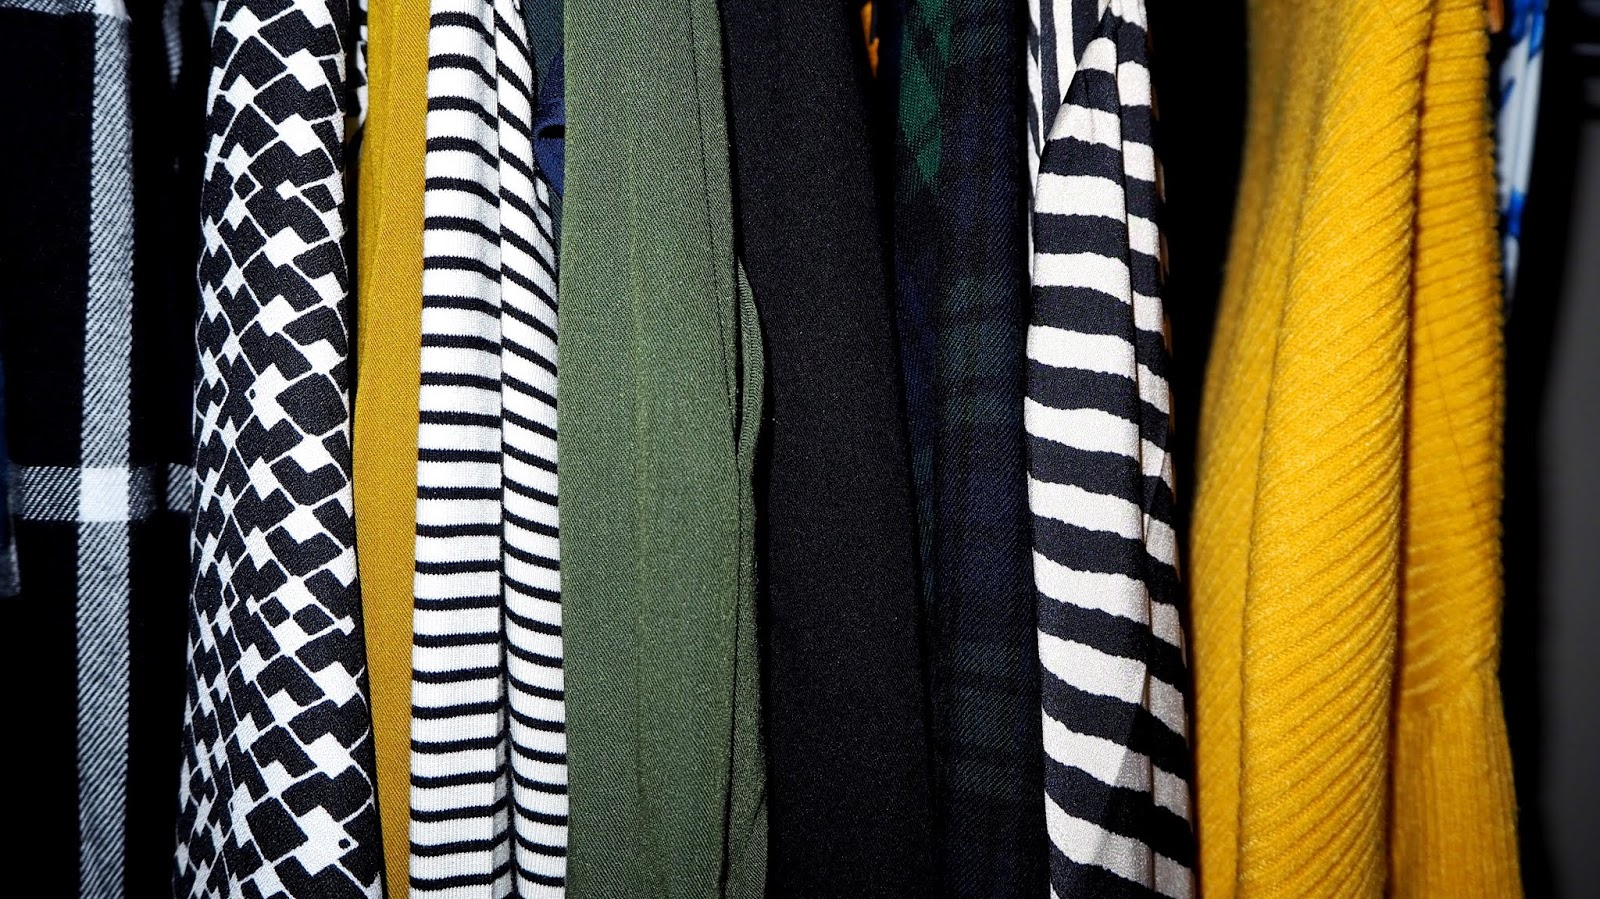 5 Ways to Keep Your Unwanted Clothing Out of Landfills